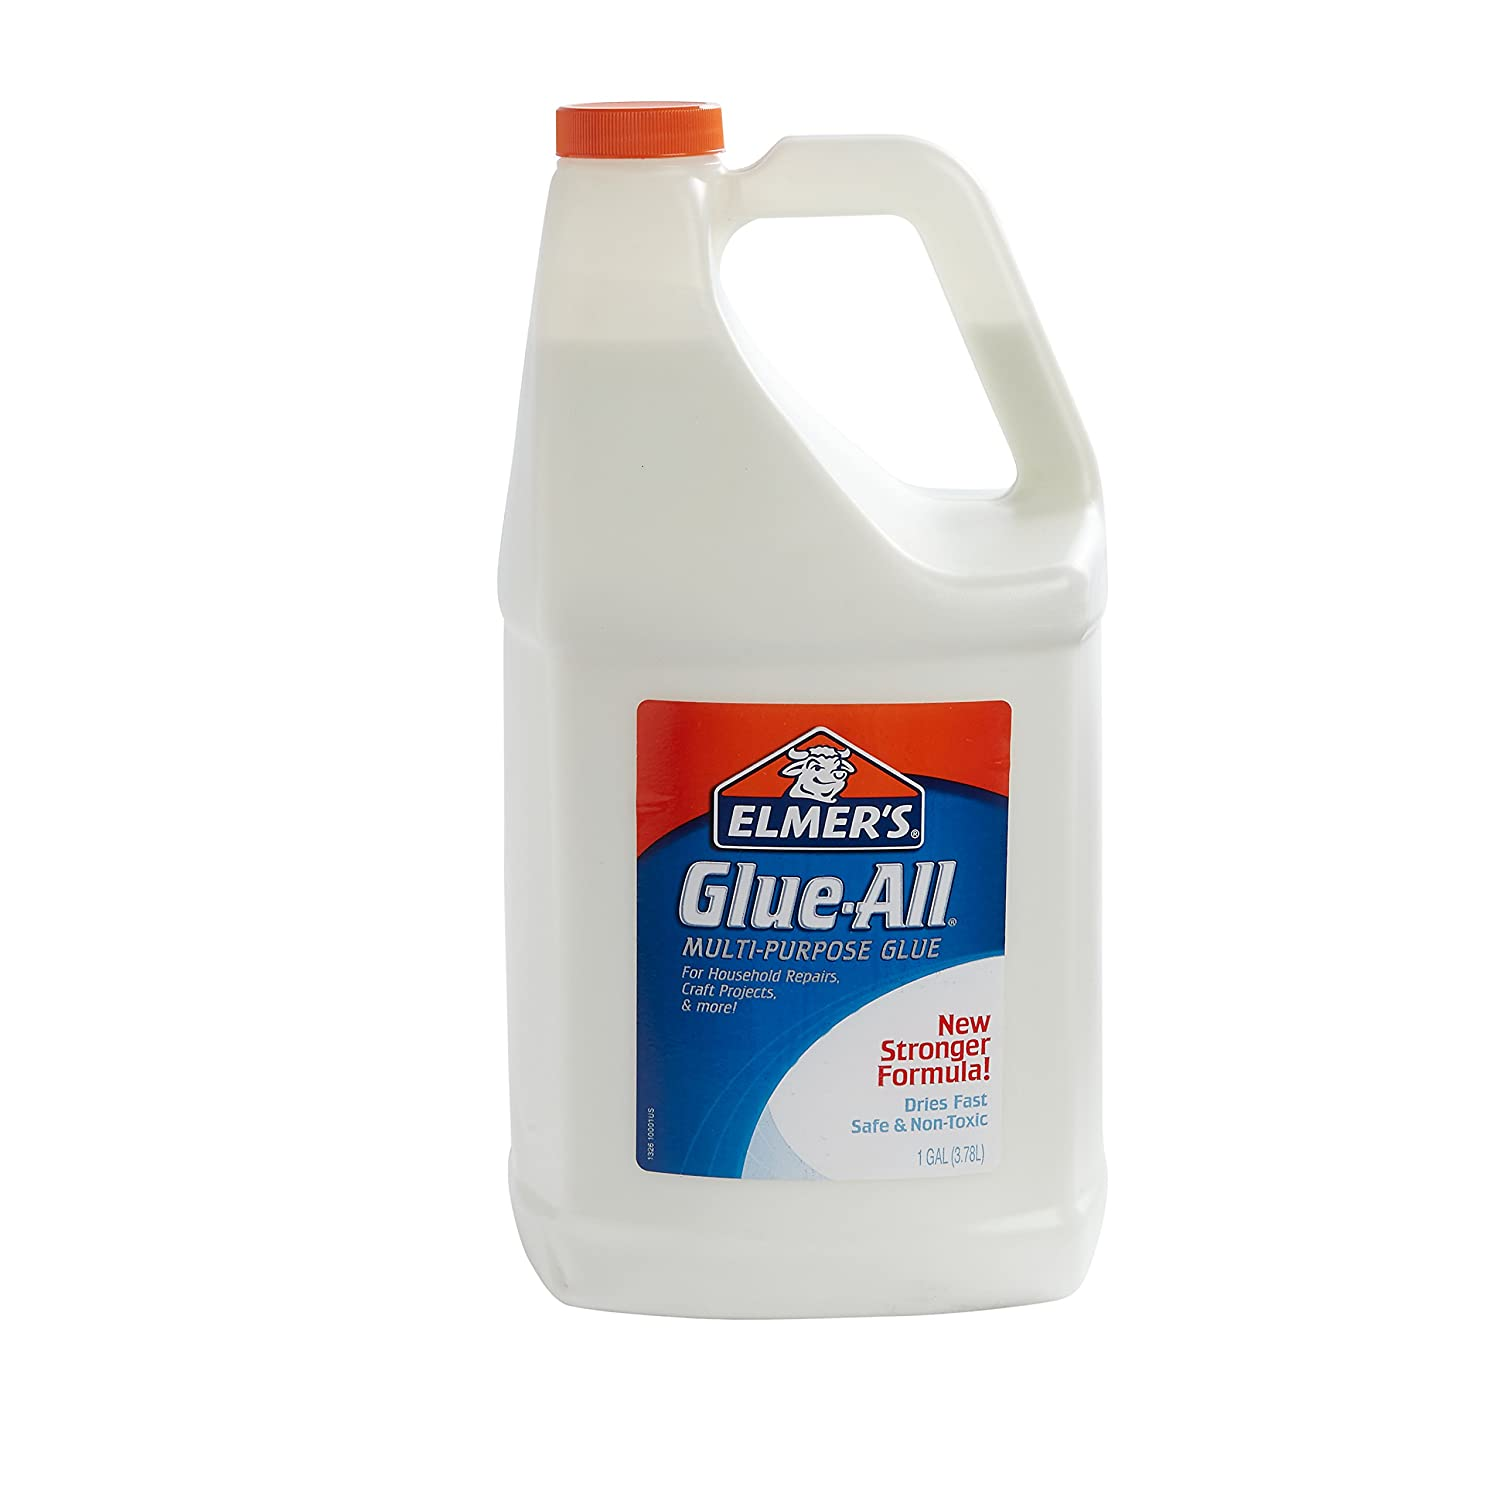 Elmer's Glue - LOTS of it!